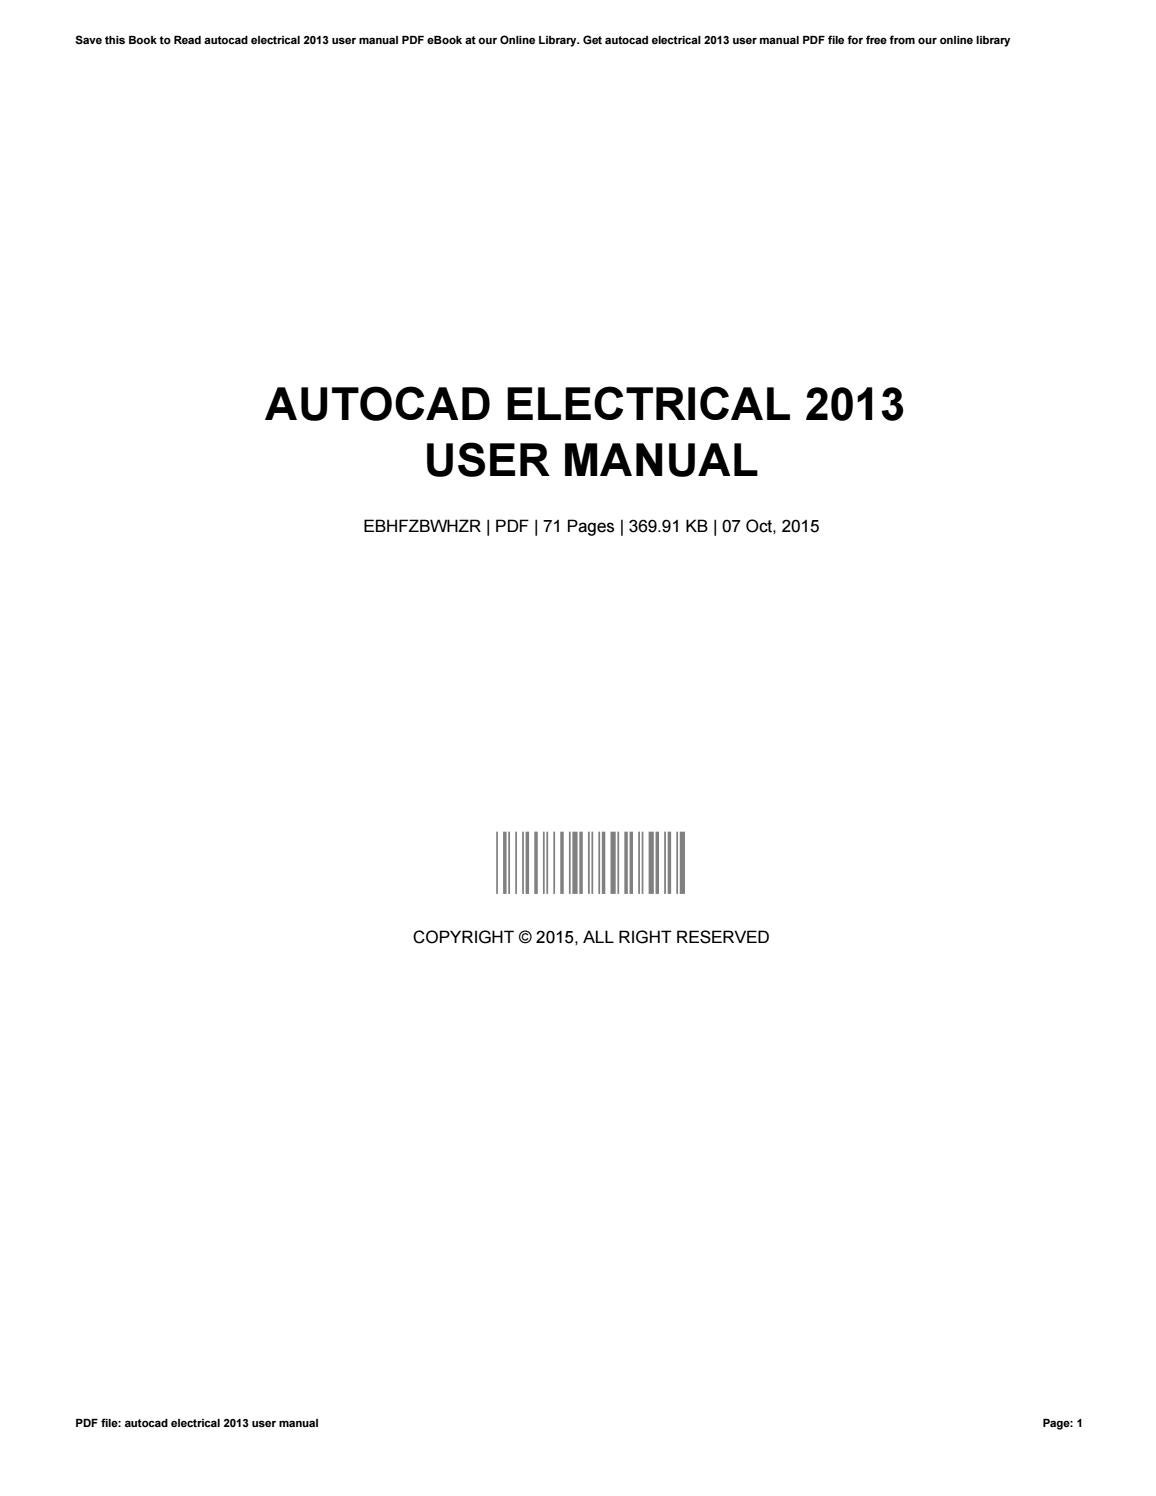 Autocad electrical 2013 user manual by gwendolynsmith2801 issuu baditri Image collections